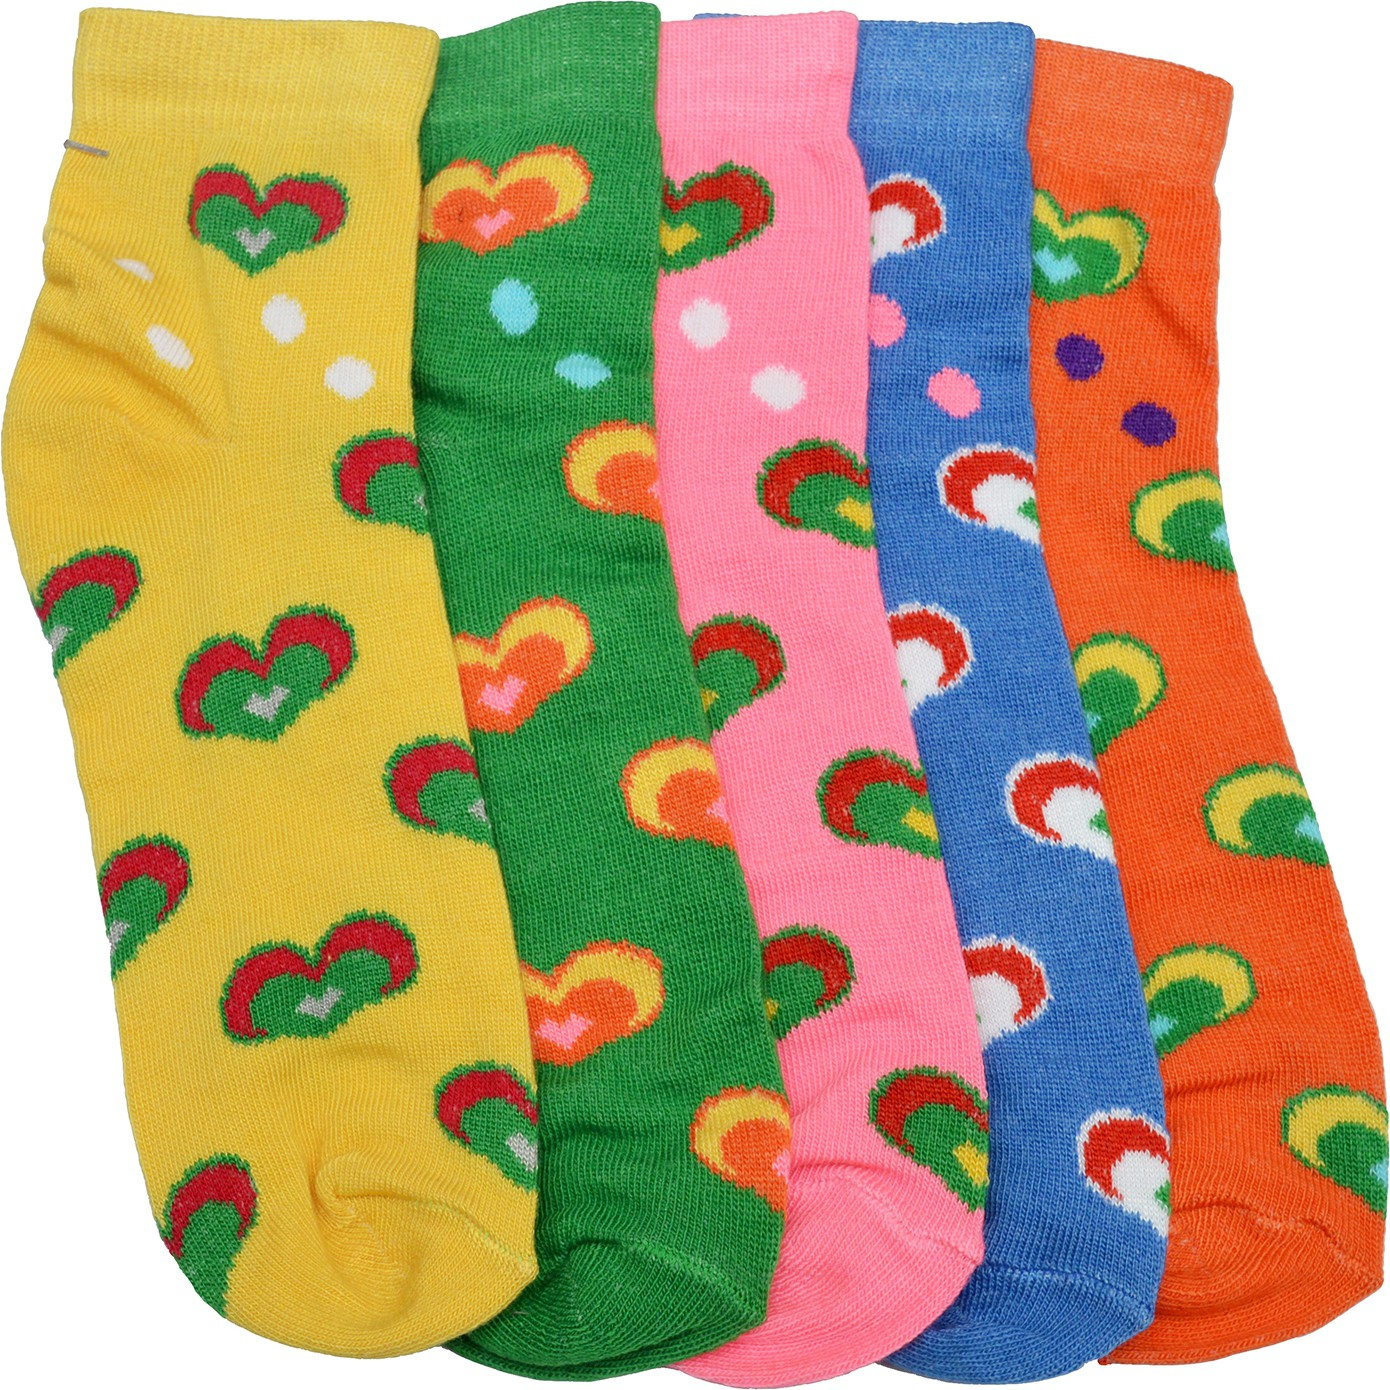 Welwear Womens Graphic Print Ankle Length Socks(Pack of 5)